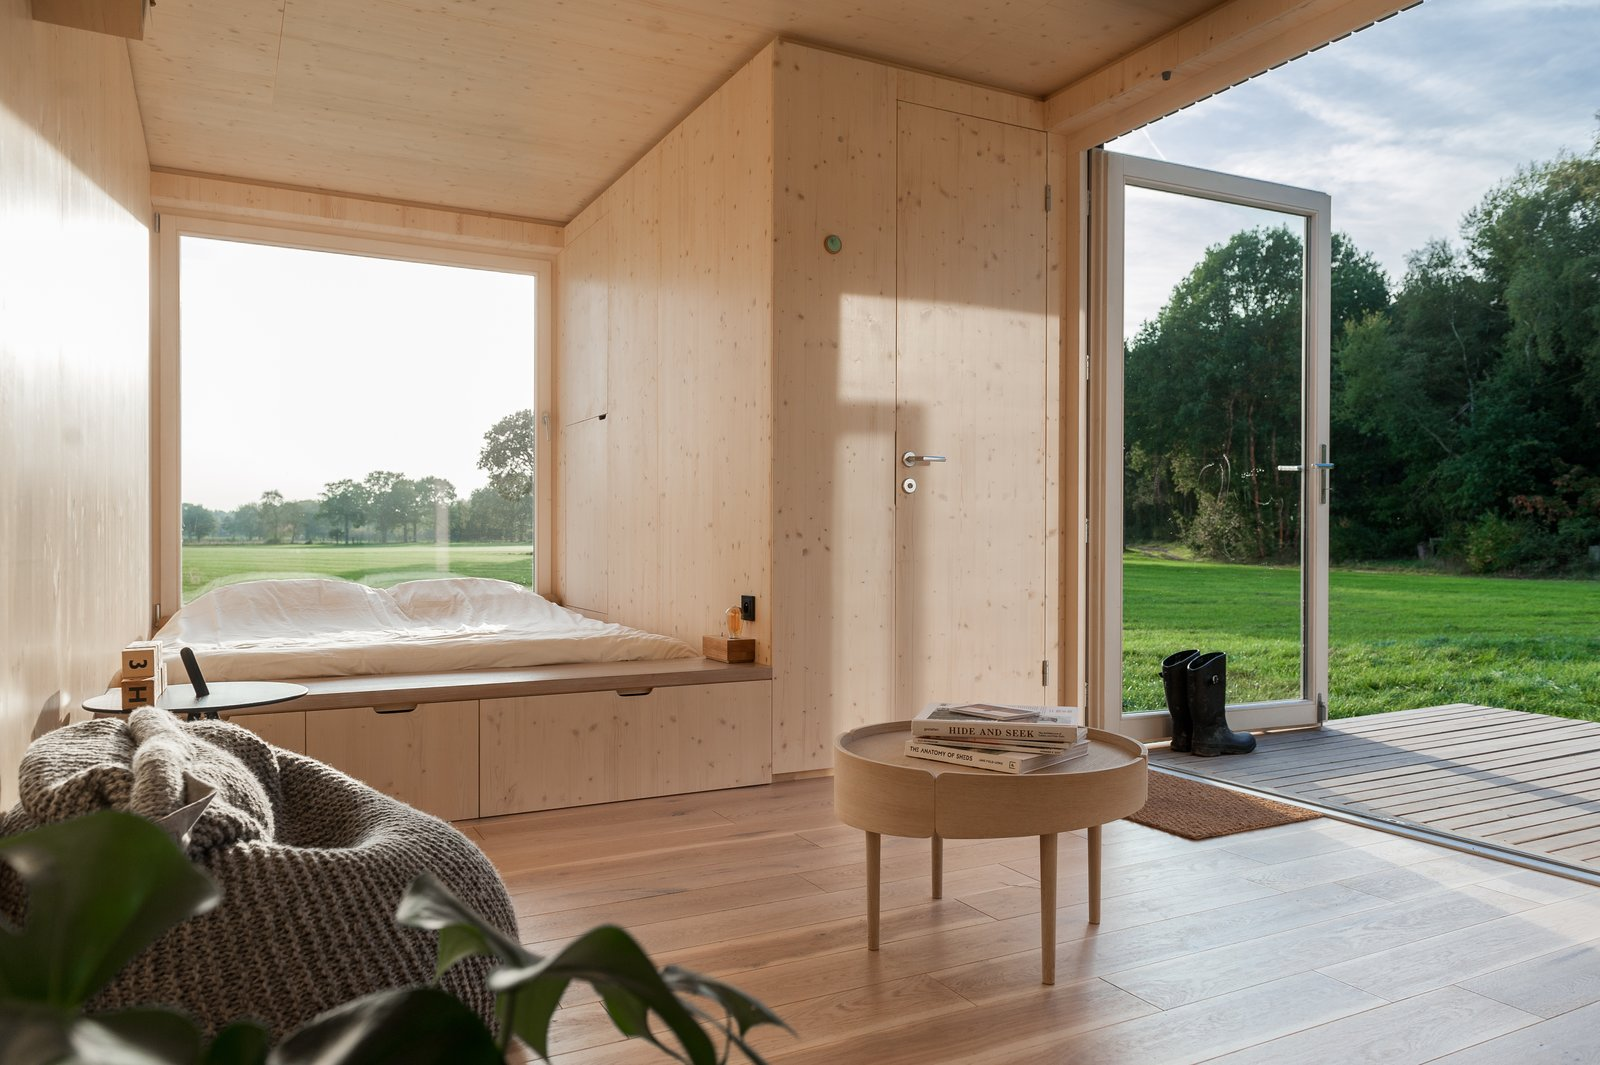 Bedroom, Light Hardwood Floor, Storage, and Bed  Photo 8 of 12 in These Off-the-Grid Cabins in Belgium Keep Their Locations Secret Until You Book